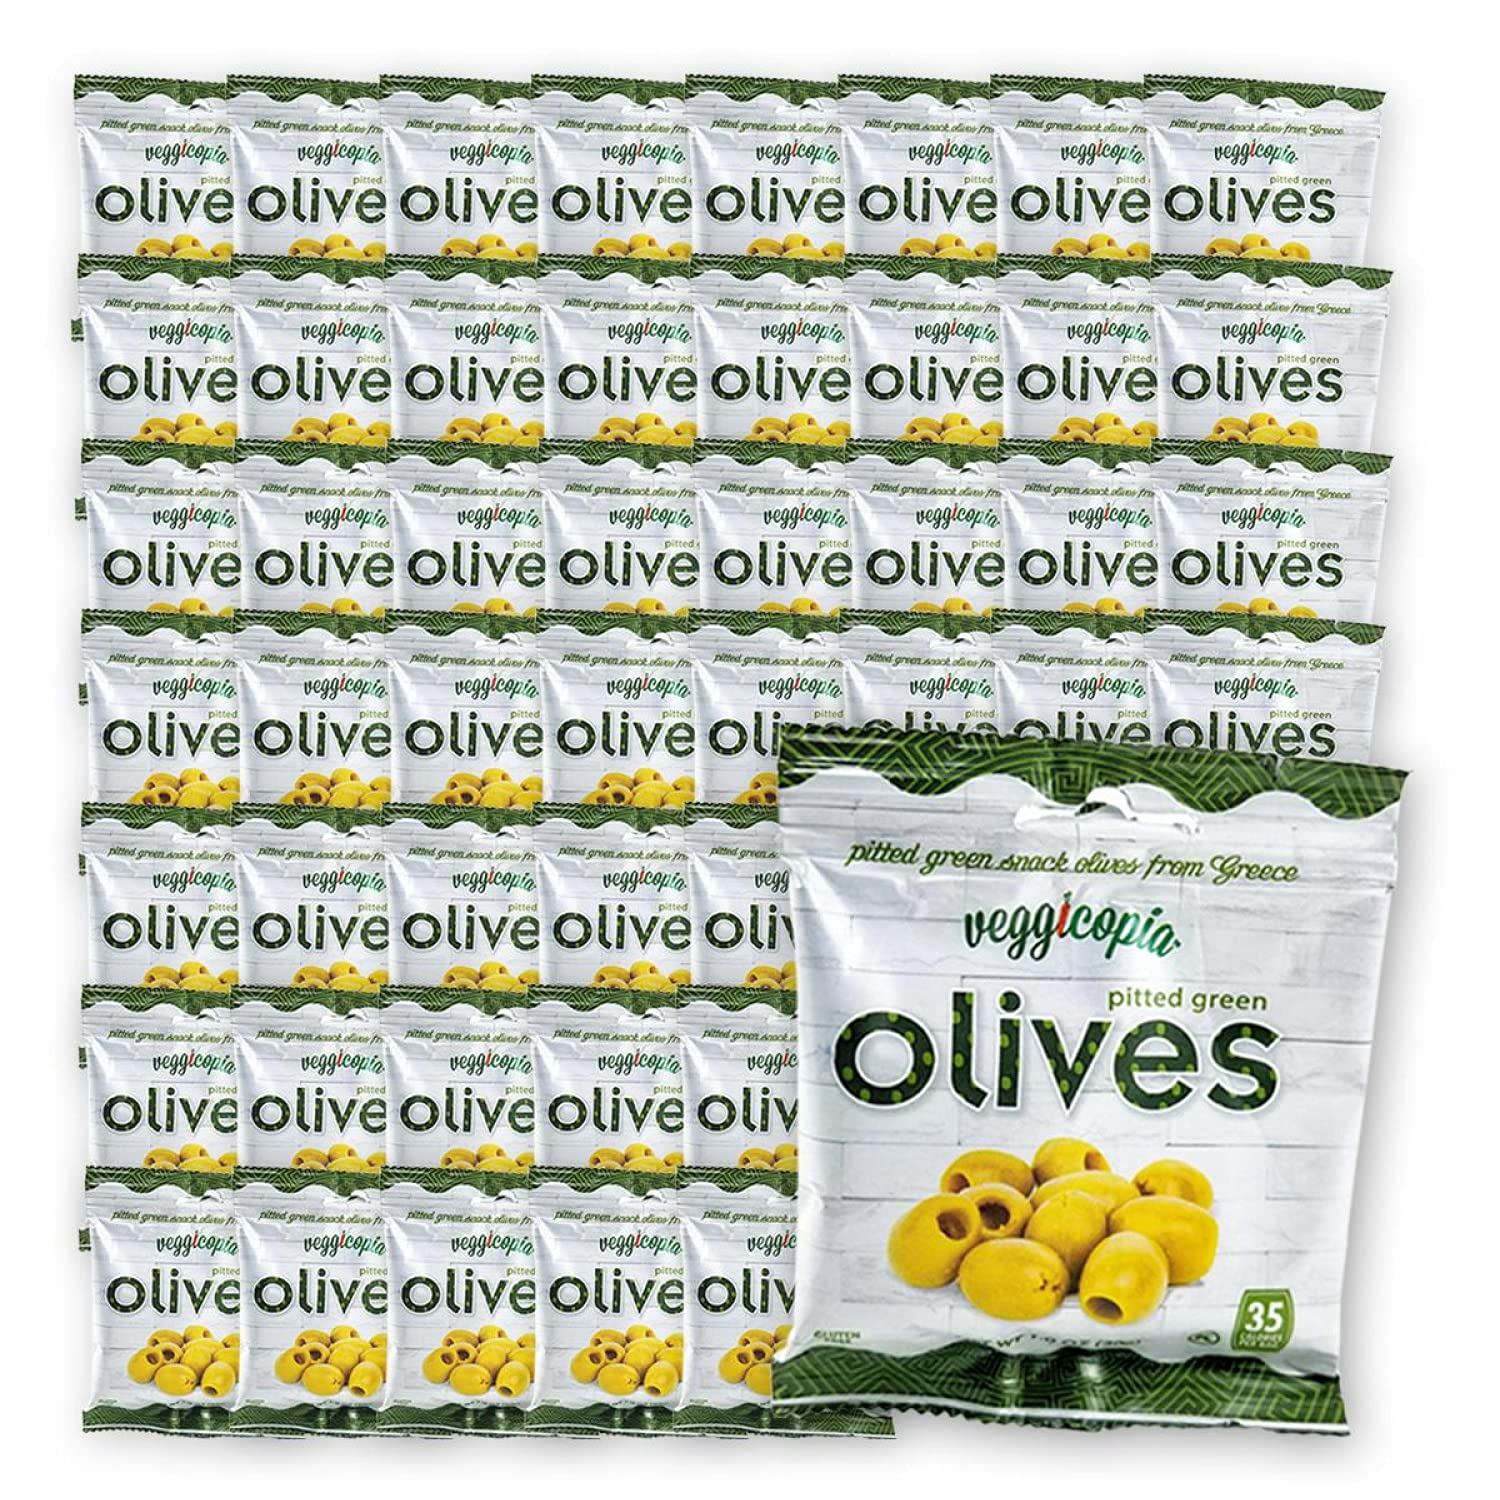 Veggicopia Olives, Tasty Green Pitted Olives - Keto - 1.05 Ounce Snack Bags (Bulk Pack - 48 bags)